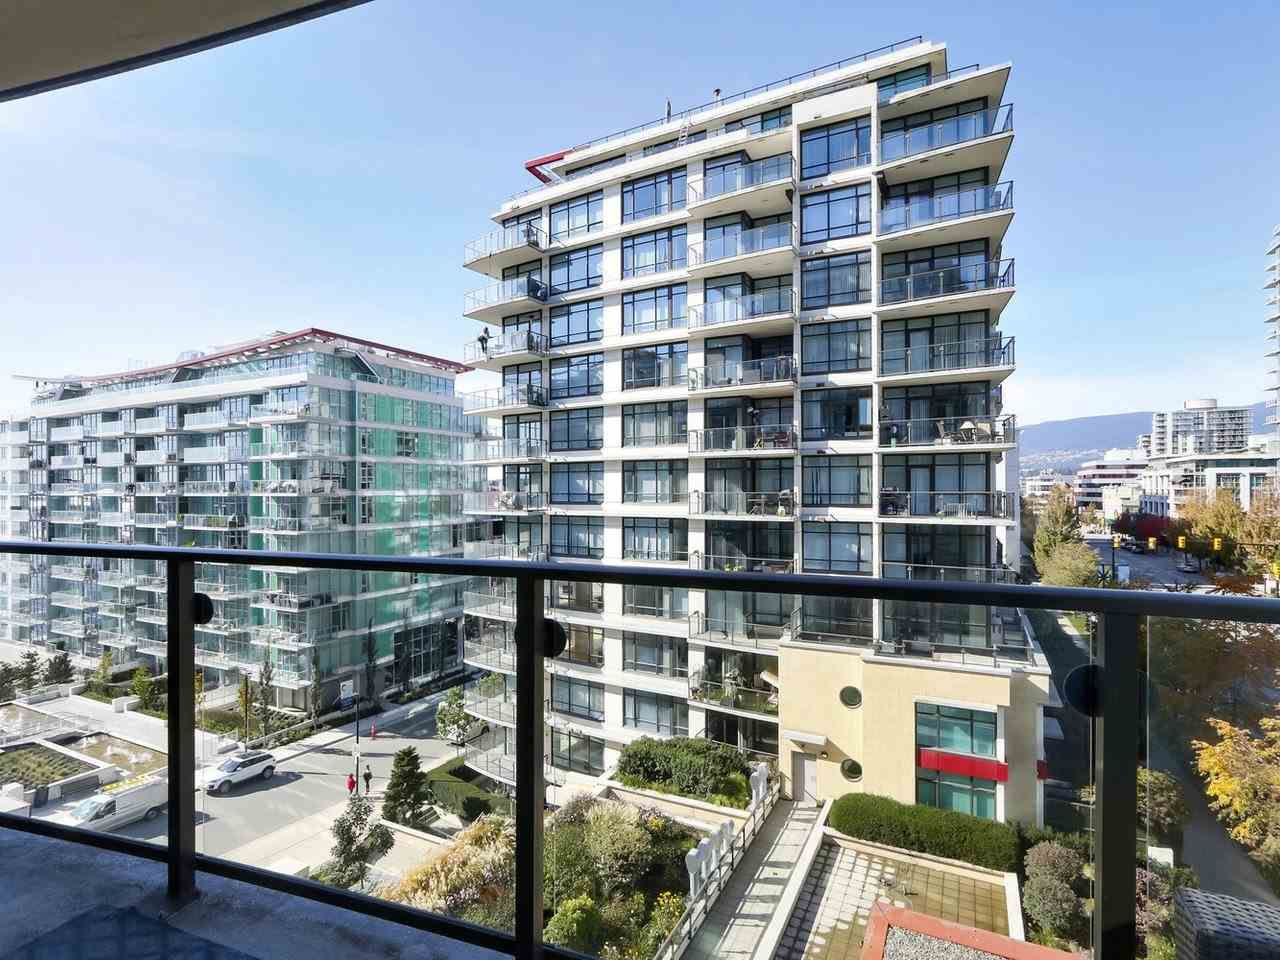 """Photo 17: Photos: 608 172 VICTORY SHIP Way in North Vancouver: Lower Lonsdale Condo for sale in """"Atrium at the Pier"""" : MLS®# R2454404"""